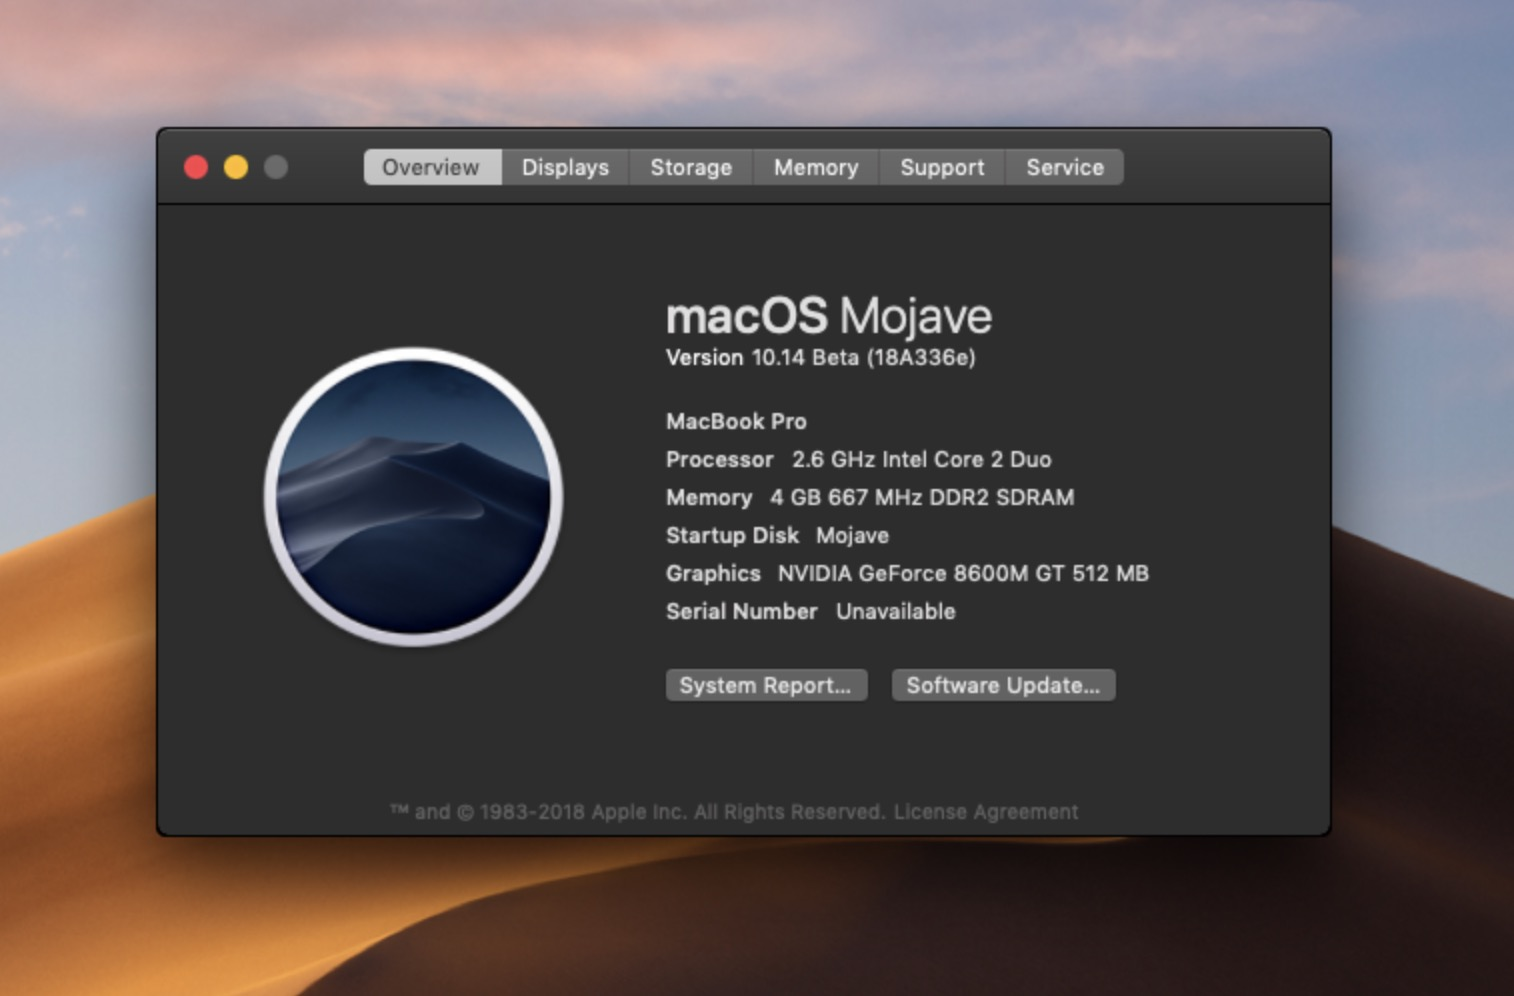 How to install macOS Mojave on incompatible computers